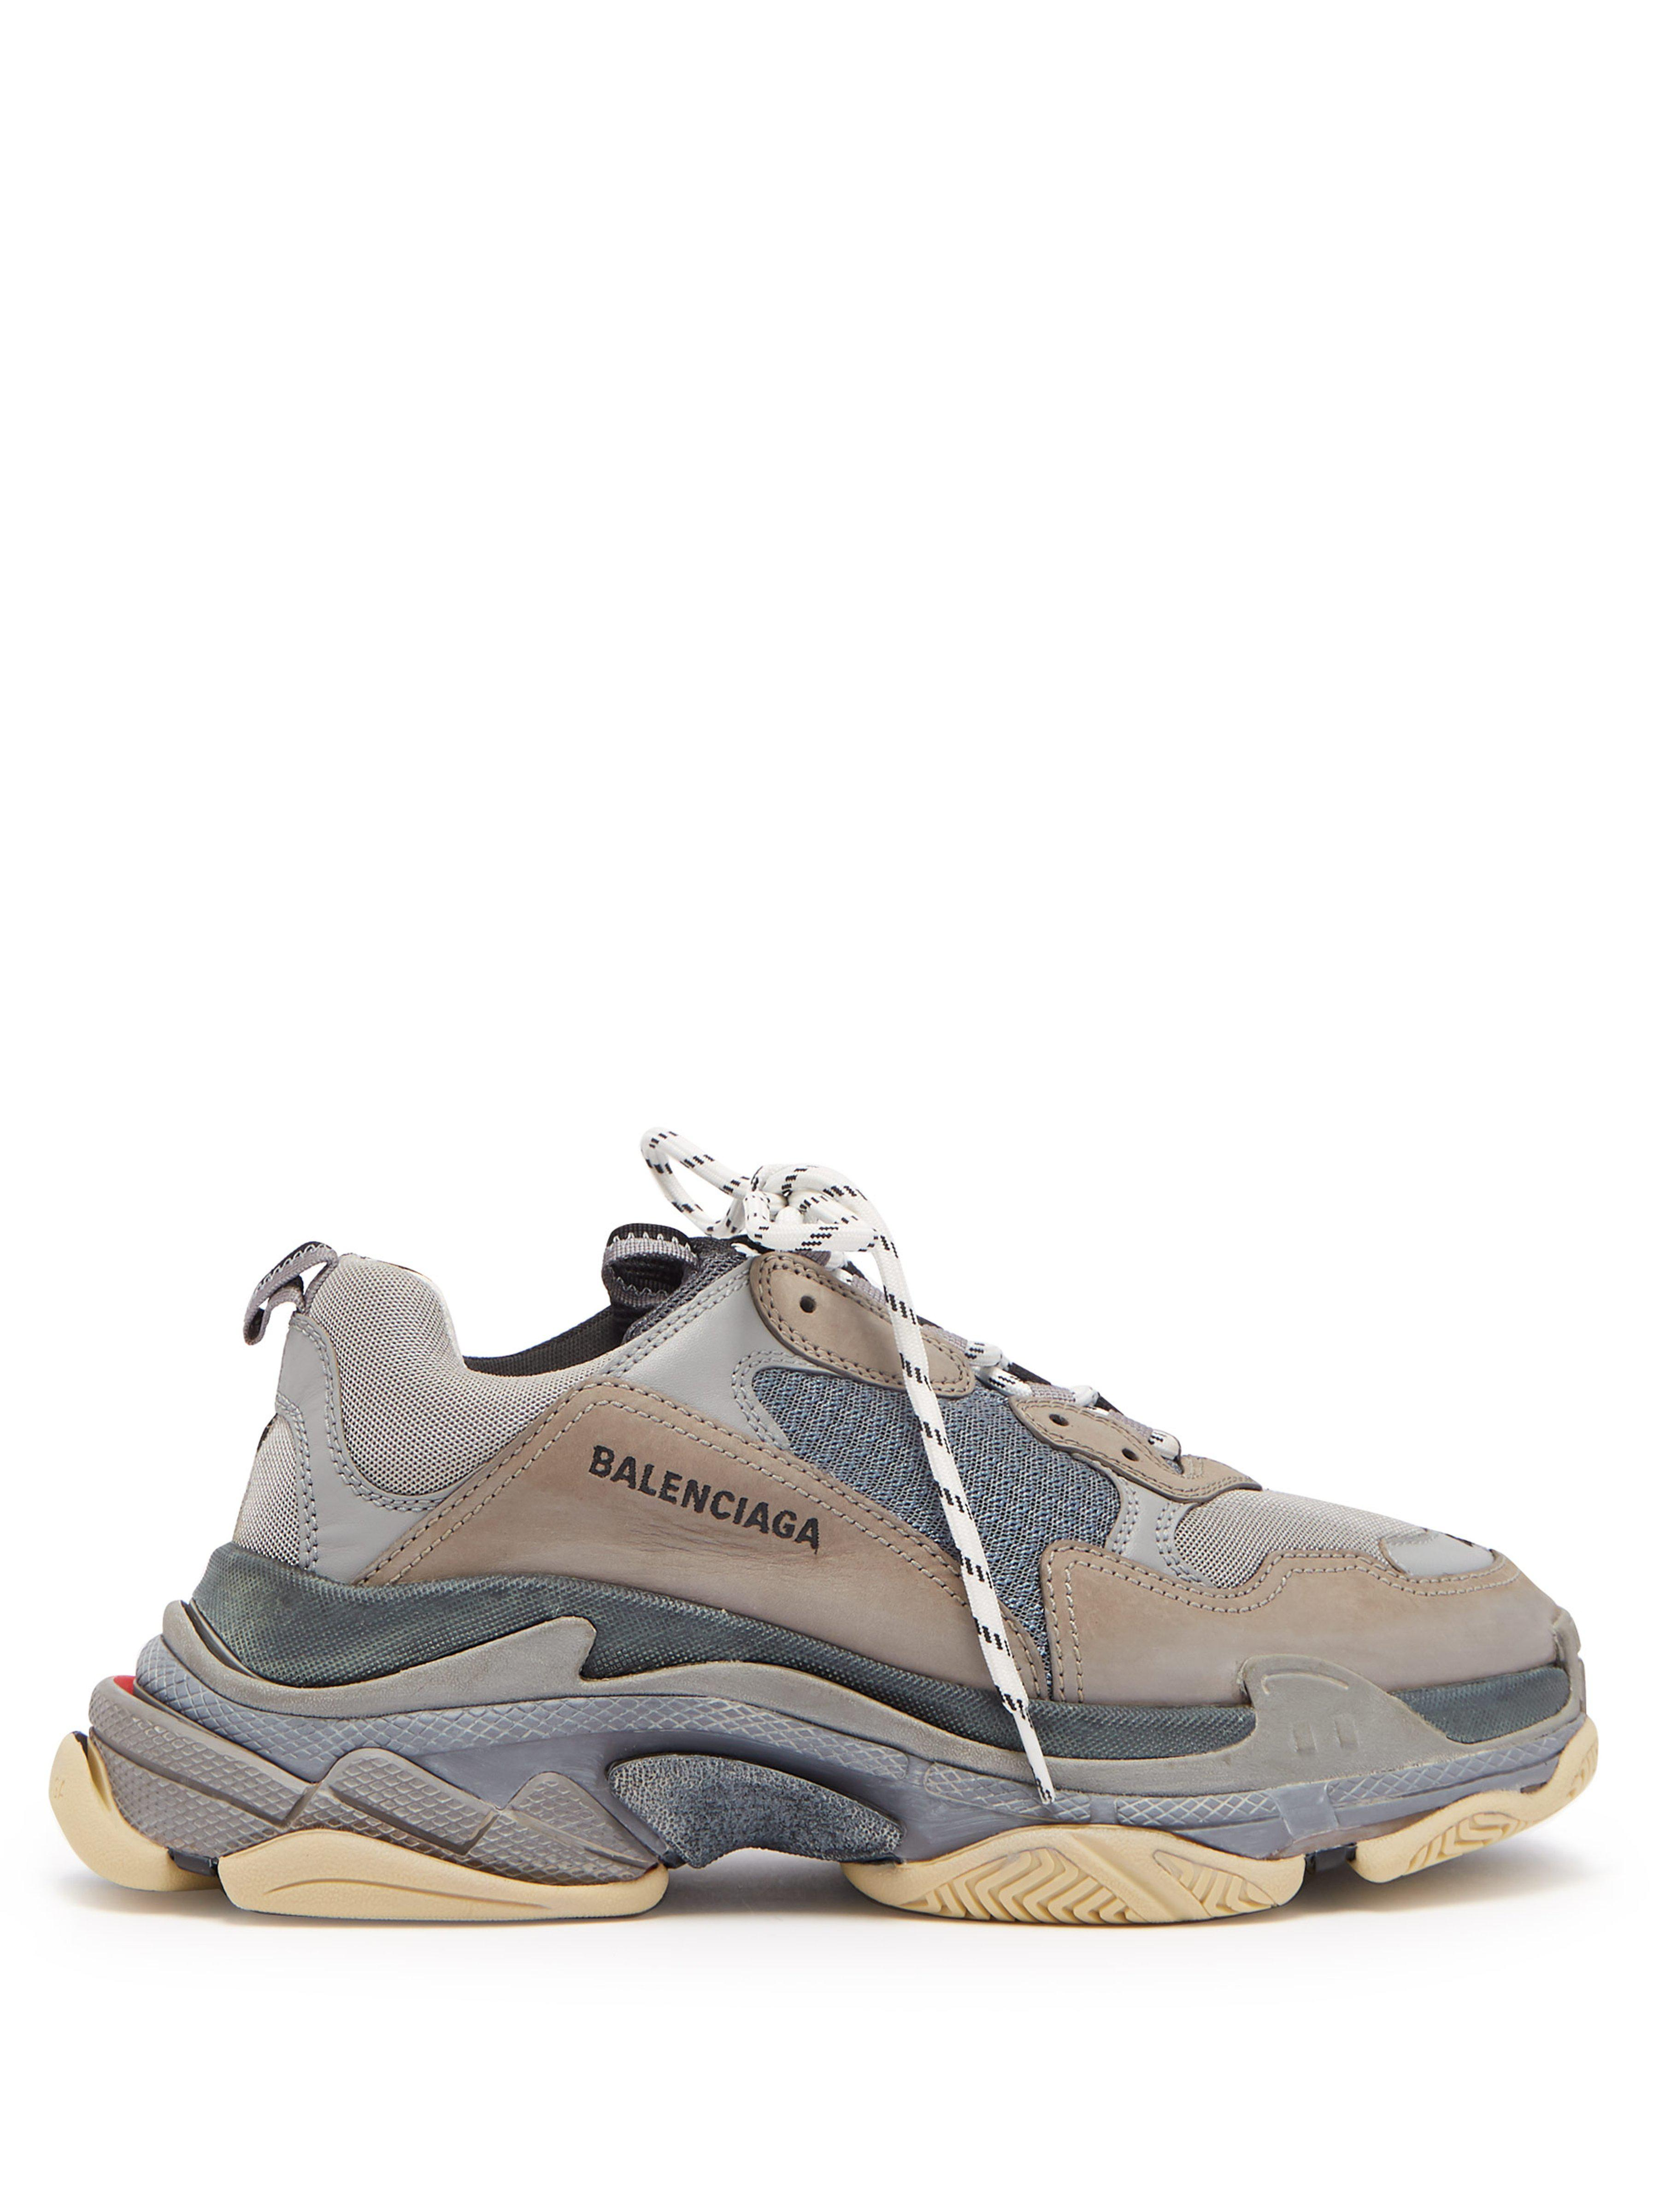 Balenciaga Triple S Split Colourway Low Top Trainers in Gray for Men ... 02d54e27b0